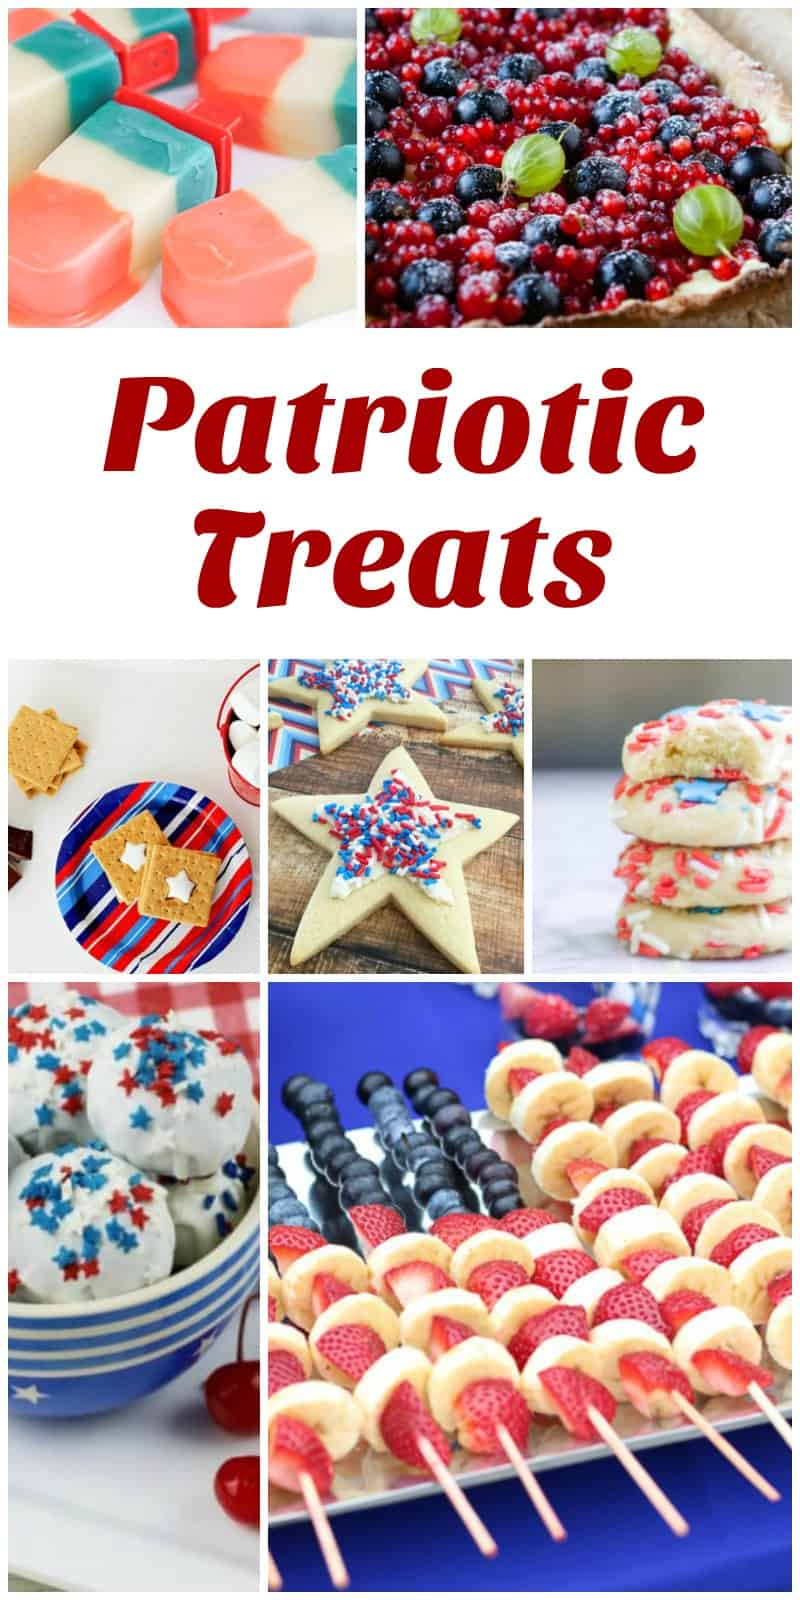 Patriotic Treats - Delicious Dishes Recipe Party